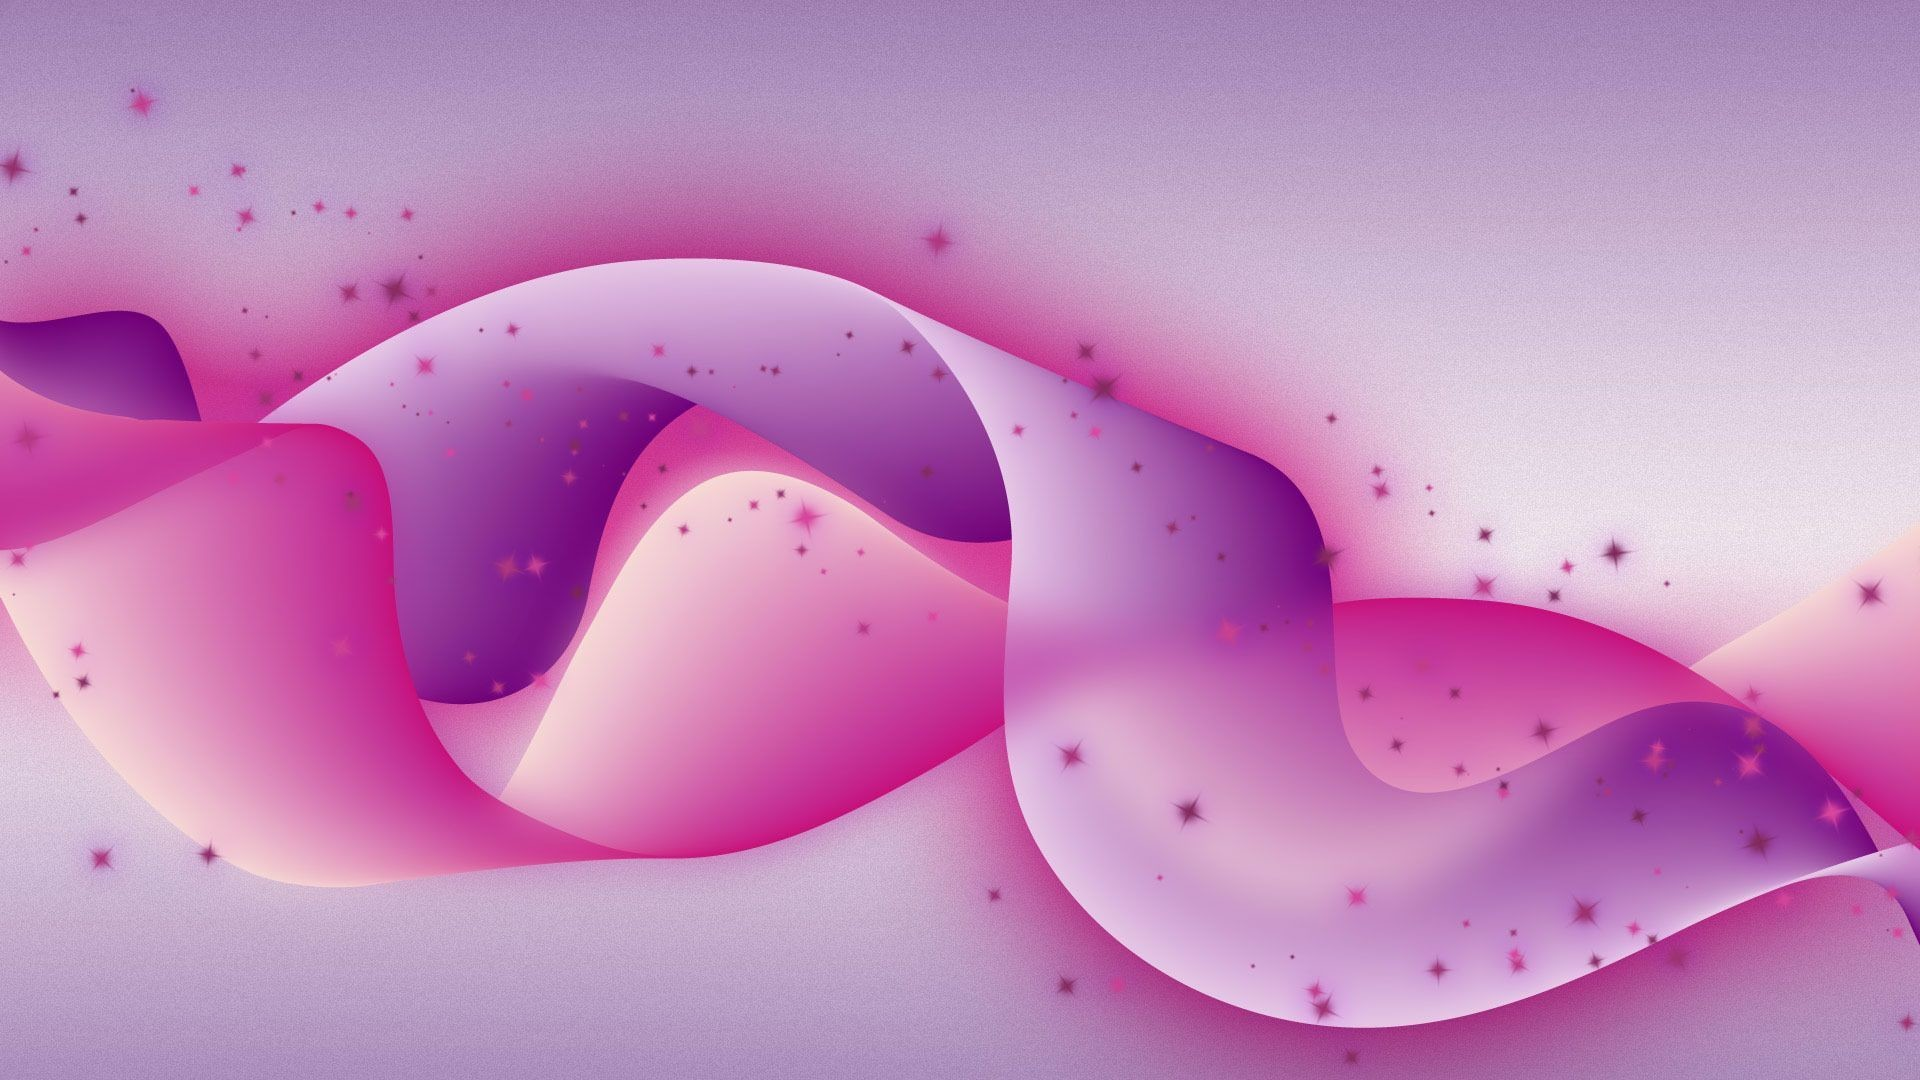 … purple and pink wallpaper …